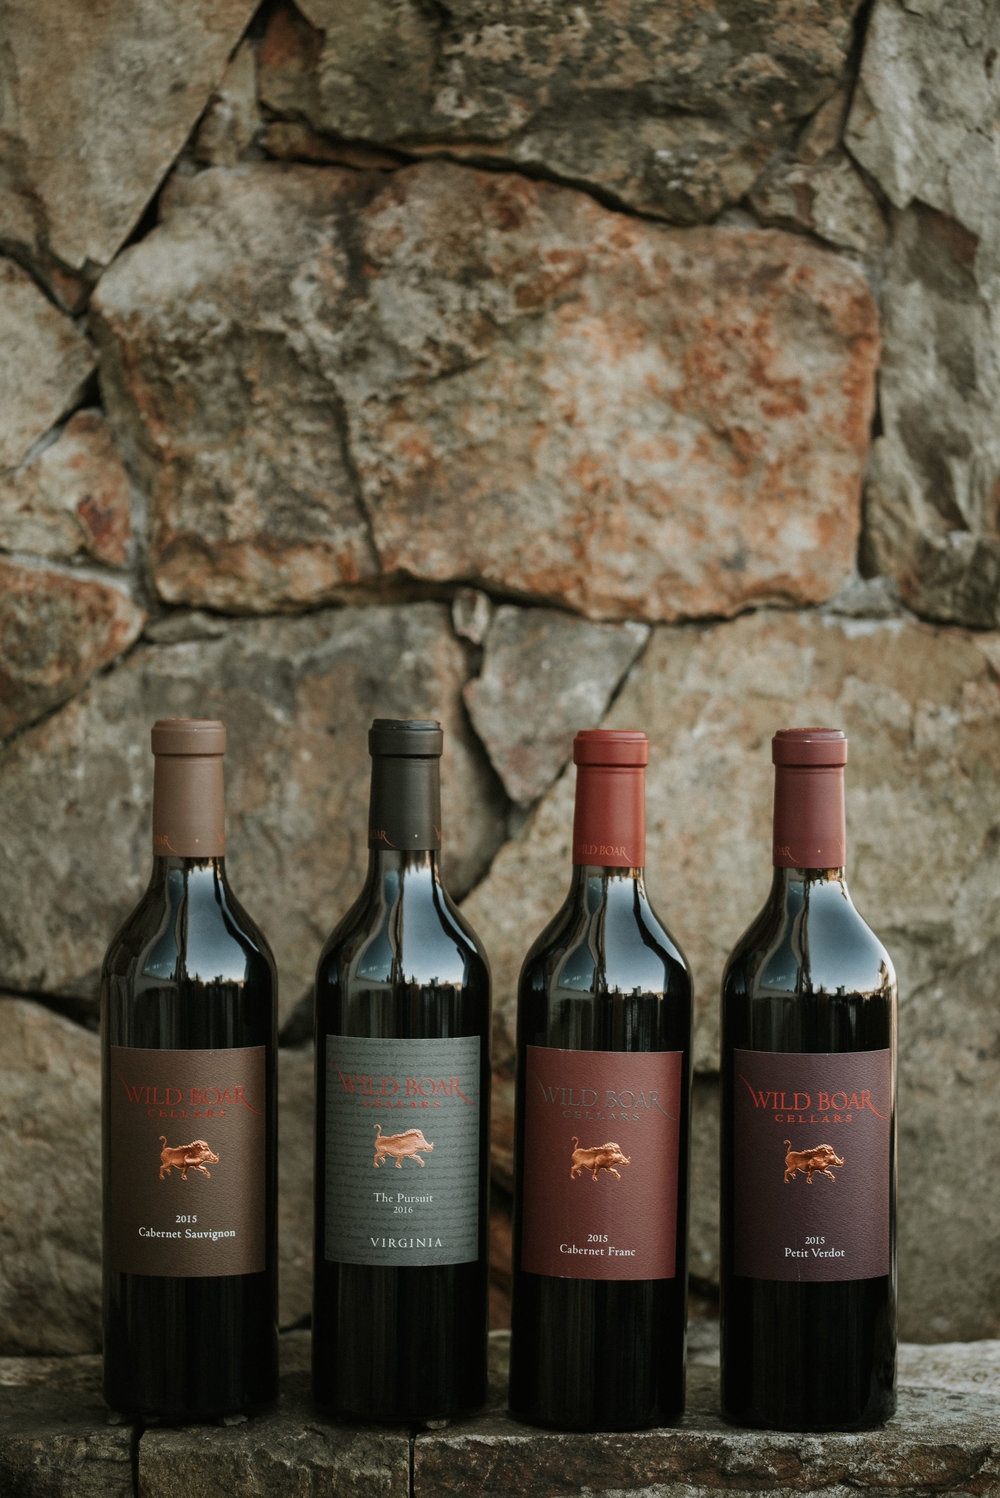 Wild Boar Cellars - The mission behind Wild Boar Cellars is to provide us the platform to utilize our considerable winemaking and cellaring talents in producing stellar wines from great vineyard regions around the world, at a great value.